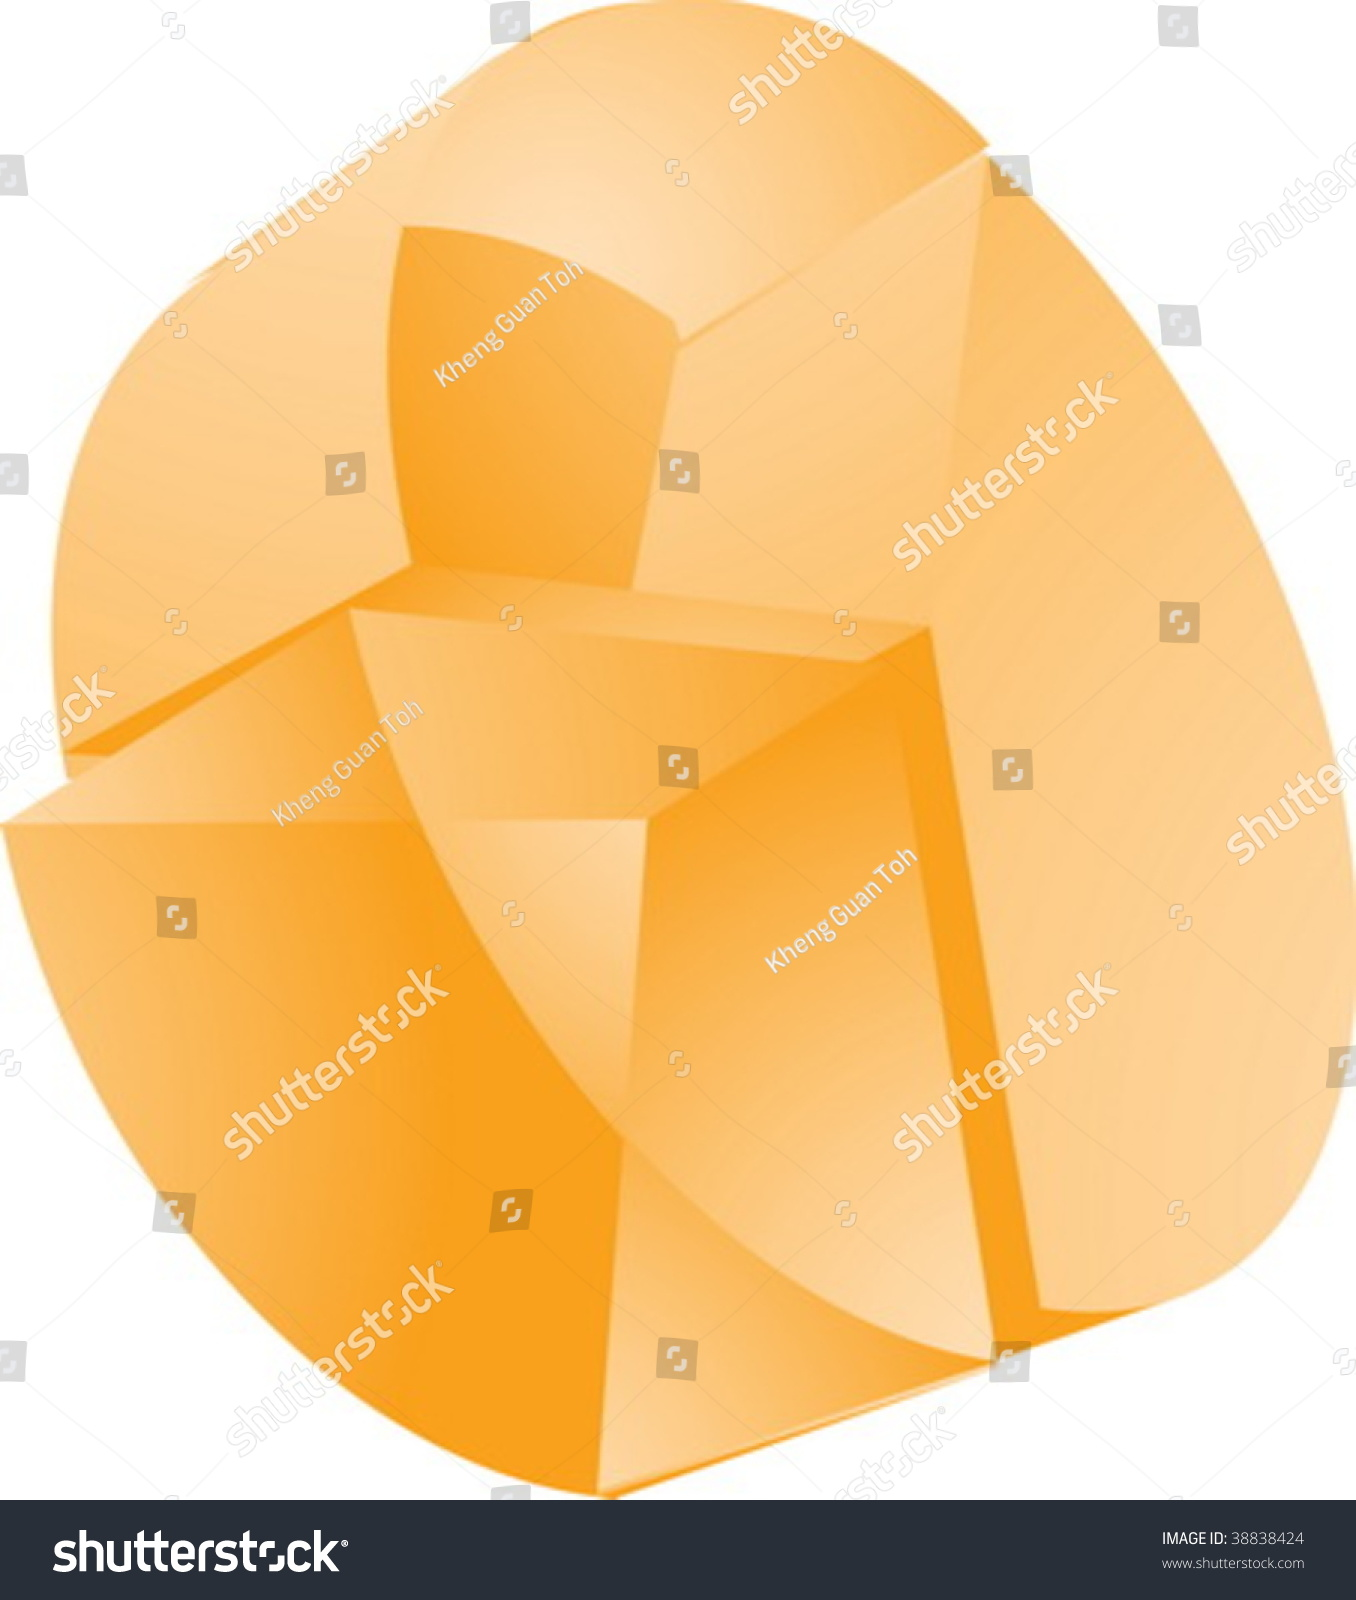 stock vector d translucent pie chart financial diagram illustration 38838424 3 d translucent pie chart financial diagram stock vector 38838424